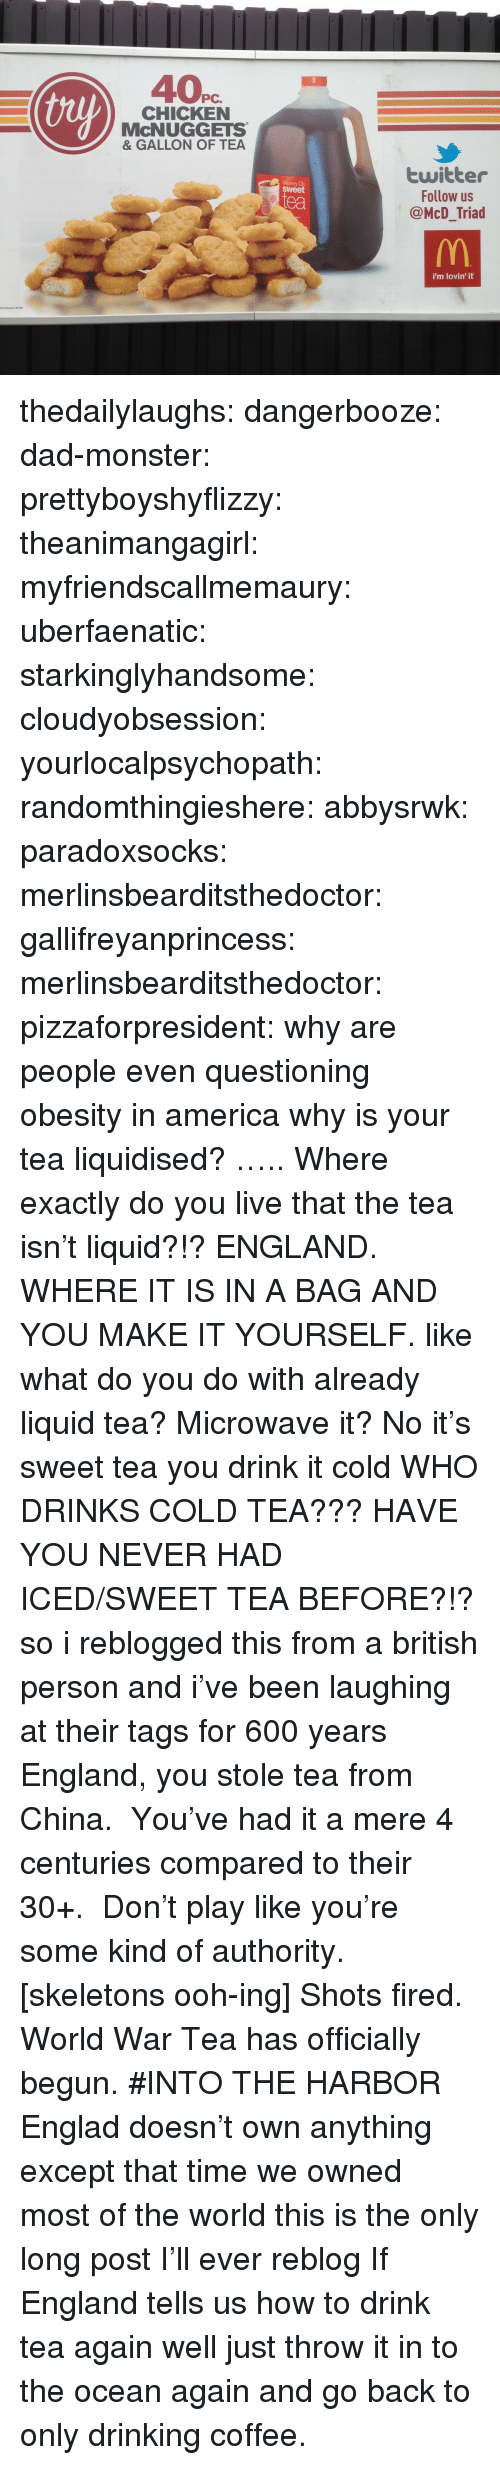 Drink Tea: thy  PC.  CHICKEN  McNUGGETS  & GALLON OF TEA  twitter  Follow us  @McD_Triad  Mickey Ds  sweet  ea  i'm lovin' it thedailylaughs:  dangerbooze:  dad-monster:  prettyboyshyflizzy:  theanimangagirl:  myfriendscallmemaury:  uberfaenatic:  starkinglyhandsome:  cloudyobsession:  yourlocalpsychopath:  randomthingieshere:  abbysrwk:  paradoxsocks:  merlinsbearditsthedoctor:  gallifreyanprincess:  merlinsbearditsthedoctor:  pizzaforpresident:  why are people even questioning obesity in america  why is your tea liquidised?  ….. Where exactly do you live that the tea isn't liquid?!?  ENGLAND. WHERE IT IS IN A BAG AND YOU MAKE IT YOURSELF.  like what do you do with already liquid tea? Microwave it?   No it's sweet tea you drink it cold  WHO DRINKS COLD TEA???  HAVE YOU NEVER HAD ICED/SWEET TEA BEFORE?!?  so i reblogged this from a british person and i've been laughing at their tags for 600 years    England, you stole tea from China. You've had it a mere 4 centuries compared to their 30+. Don't play like you're some kind of authority.  [skeletons ooh-ing]  Shots fired. World War Tea has officially begun.  #INTO THE HARBOR    Englad doesn't own anything   except that time we owned most of the world     this is the only long post I'll ever reblog  If England tells us how to drink tea again well just throw it in to the ocean again and go back to only drinking coffee.